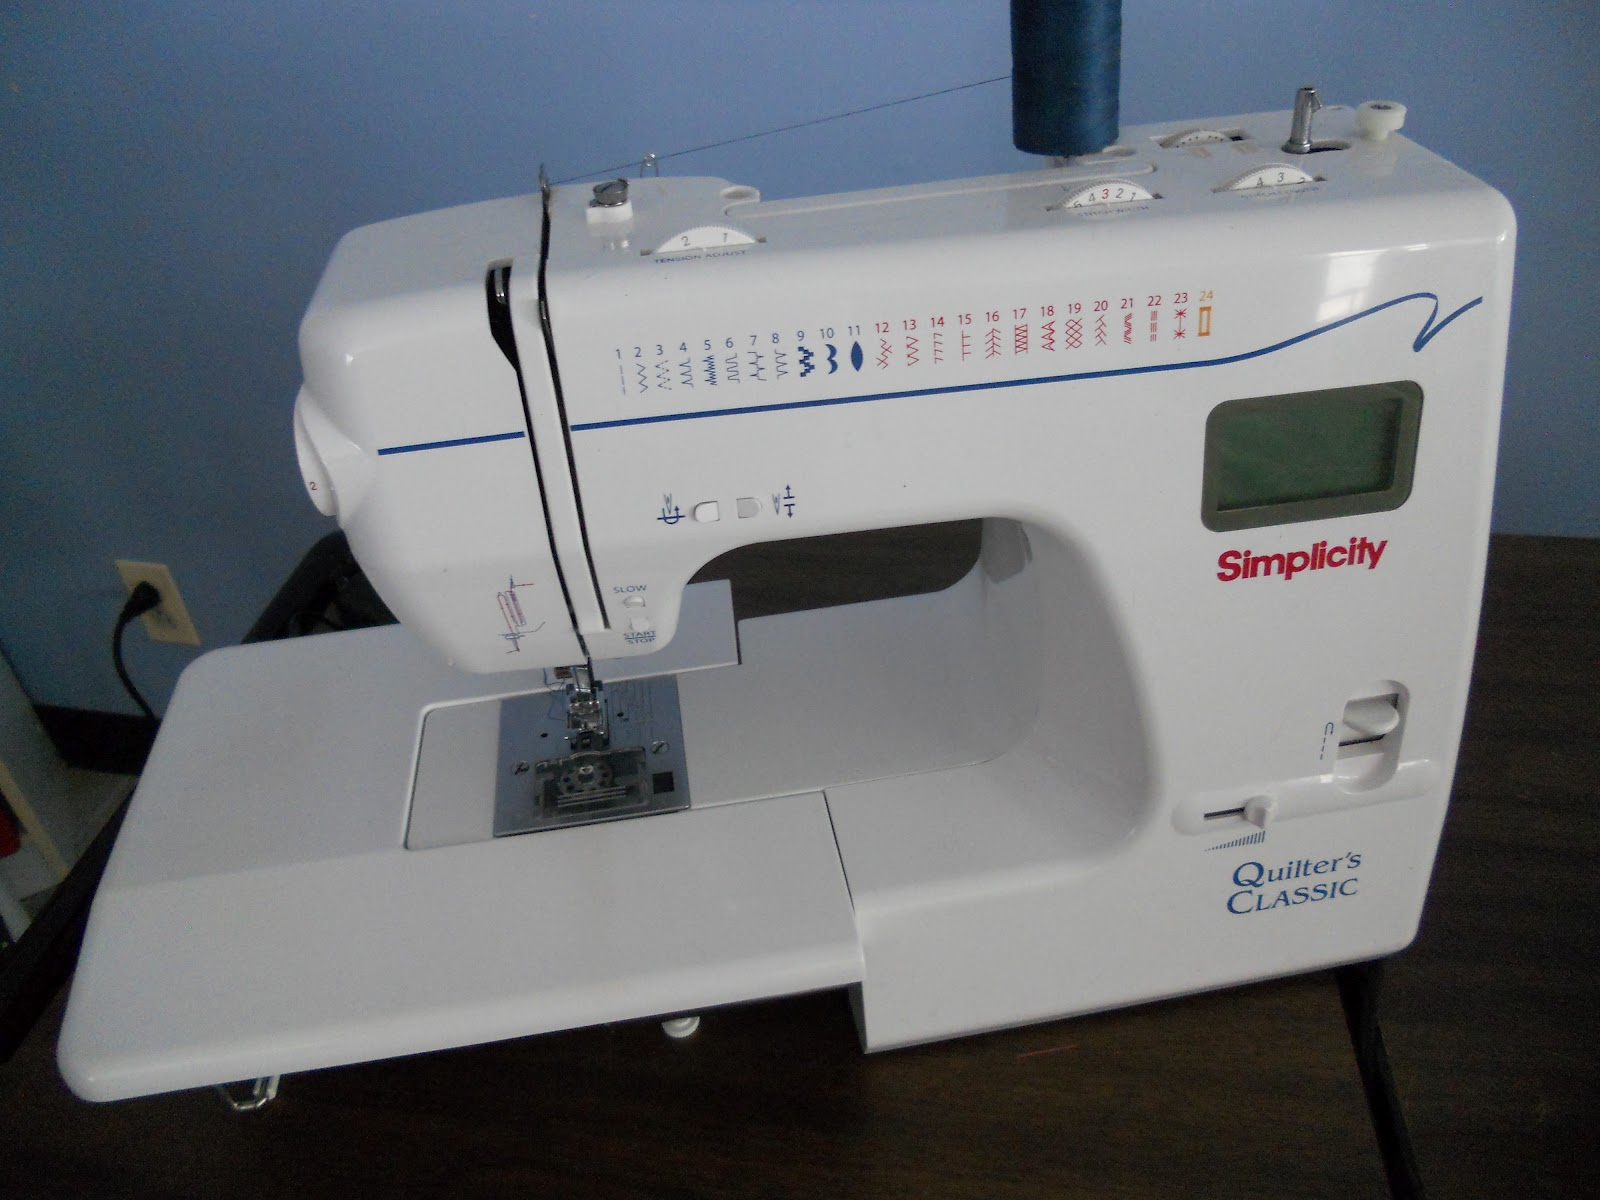 sq9050 sewing machine